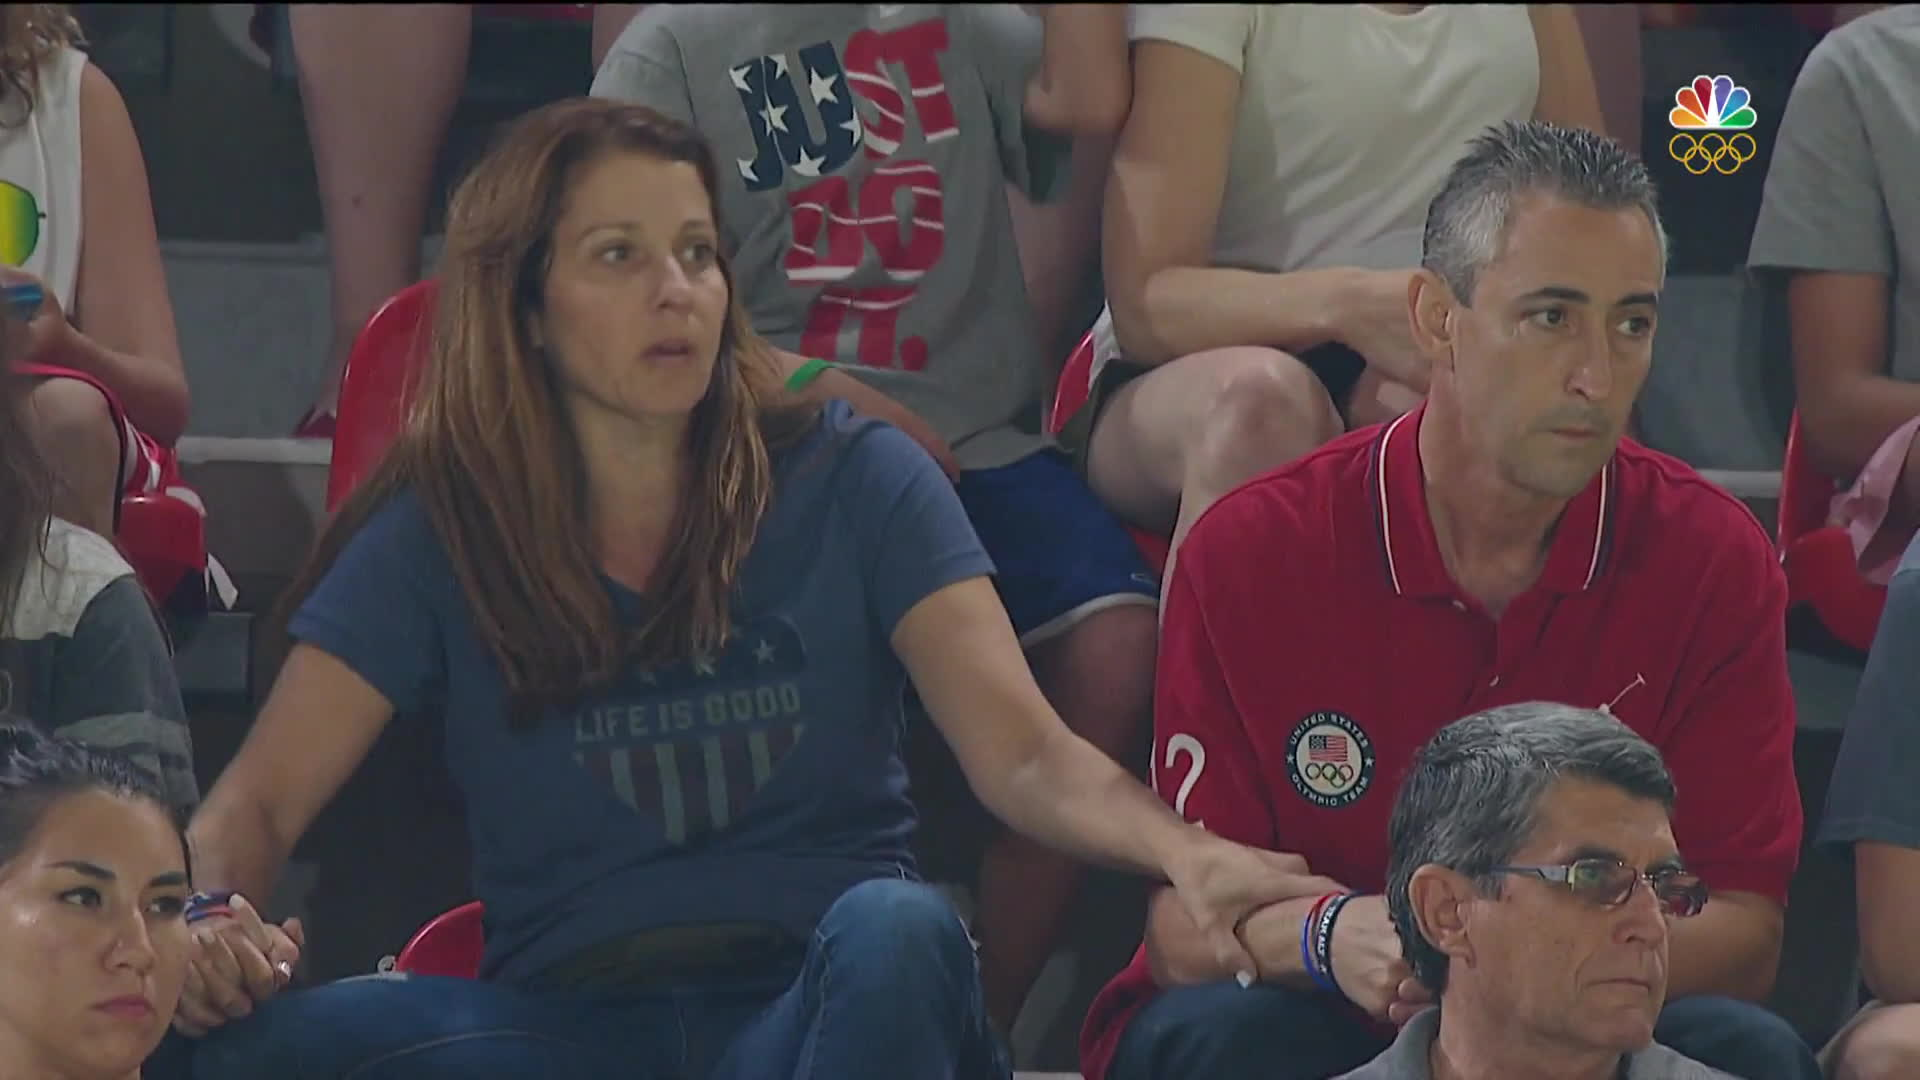 nbc sports, olymgifs, olympics, Aly Raisman's squirmy parents are at it again GIFs